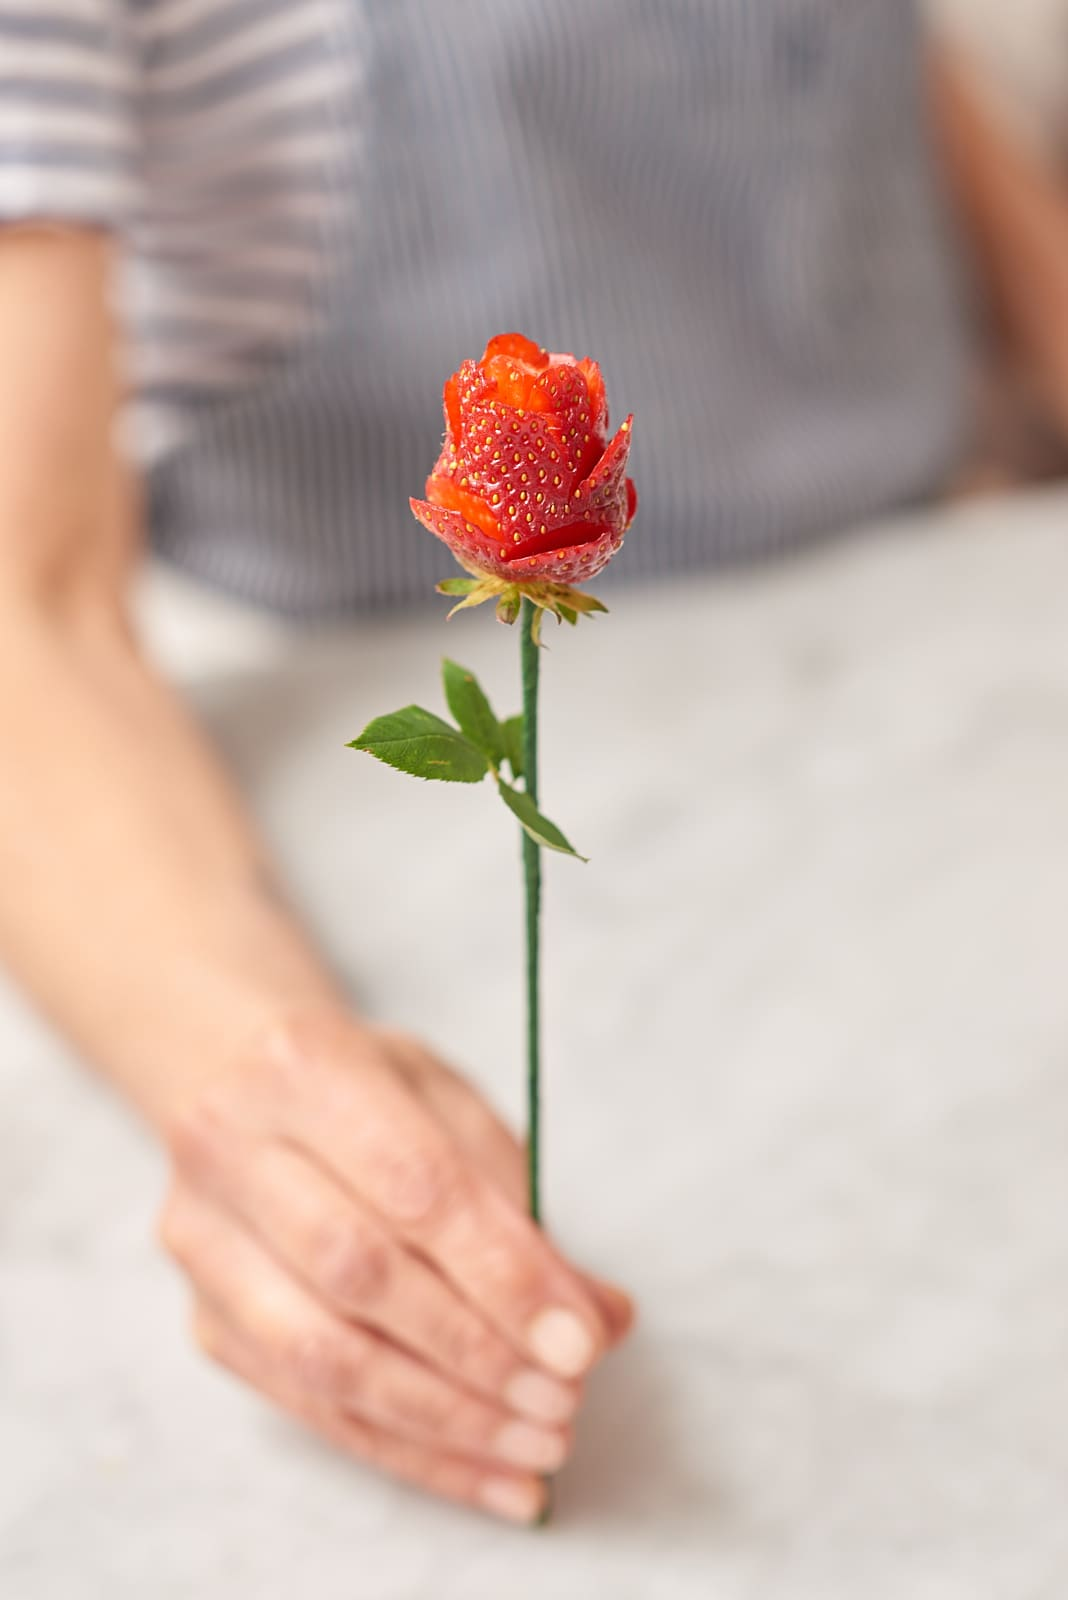 How To Make Strawberry Roses: gallery image 6